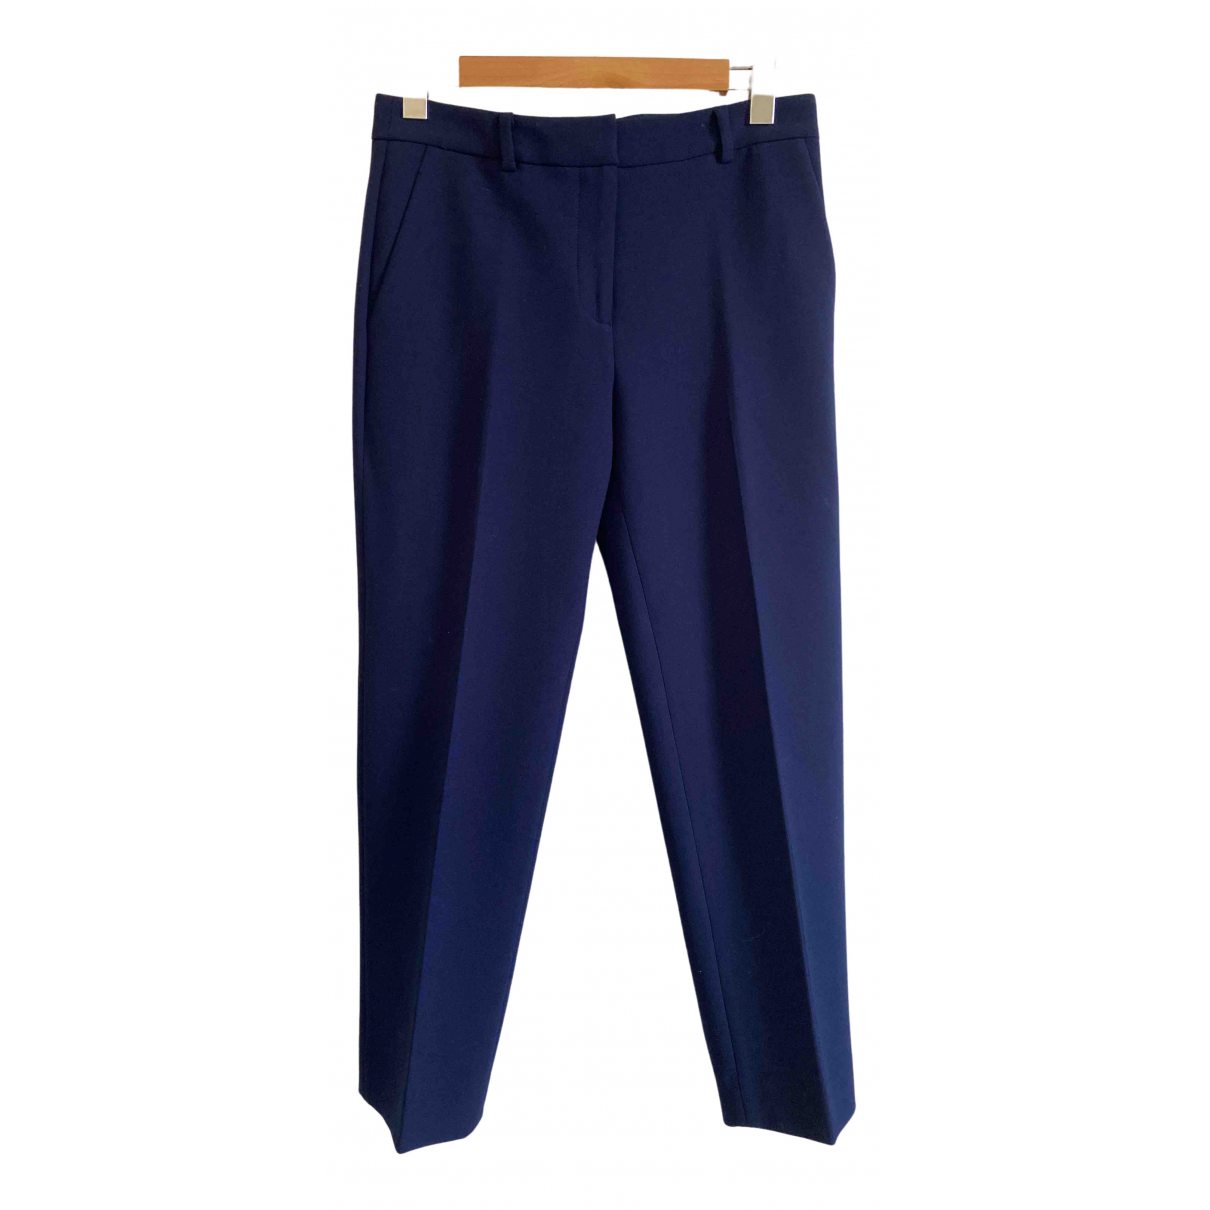 Diane Von Furstenberg \N Navy Trousers for Women 4 US